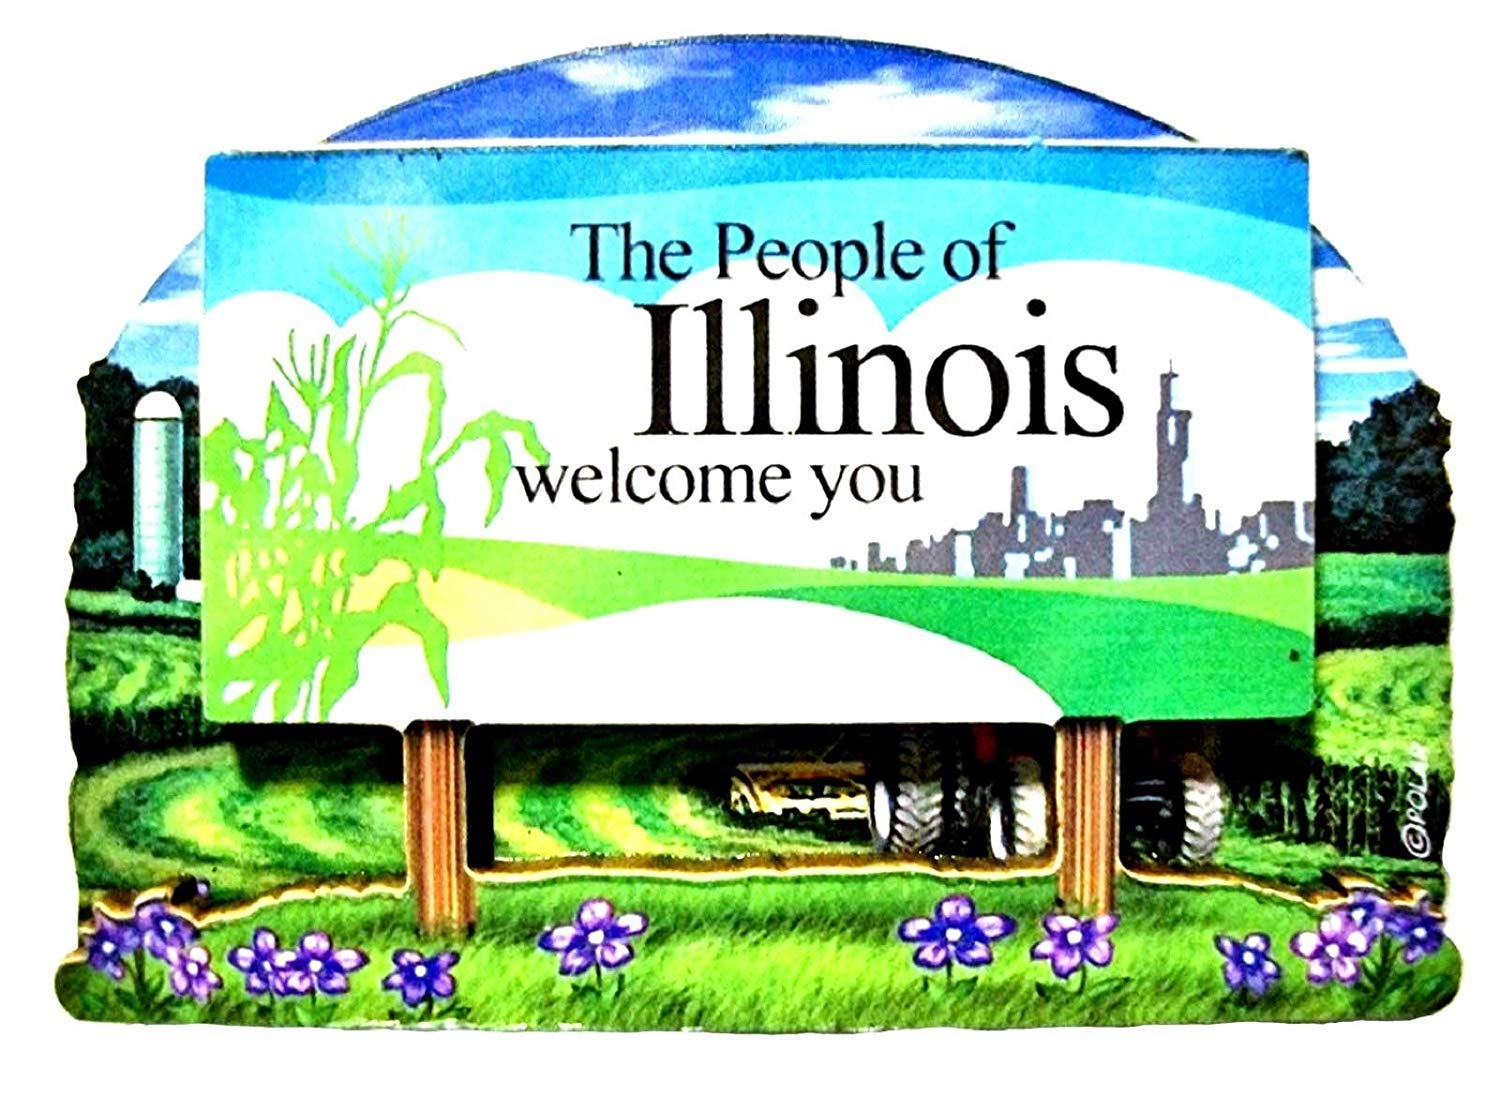 Illinois State Welcome Sign Wood Fridge Magnet 2